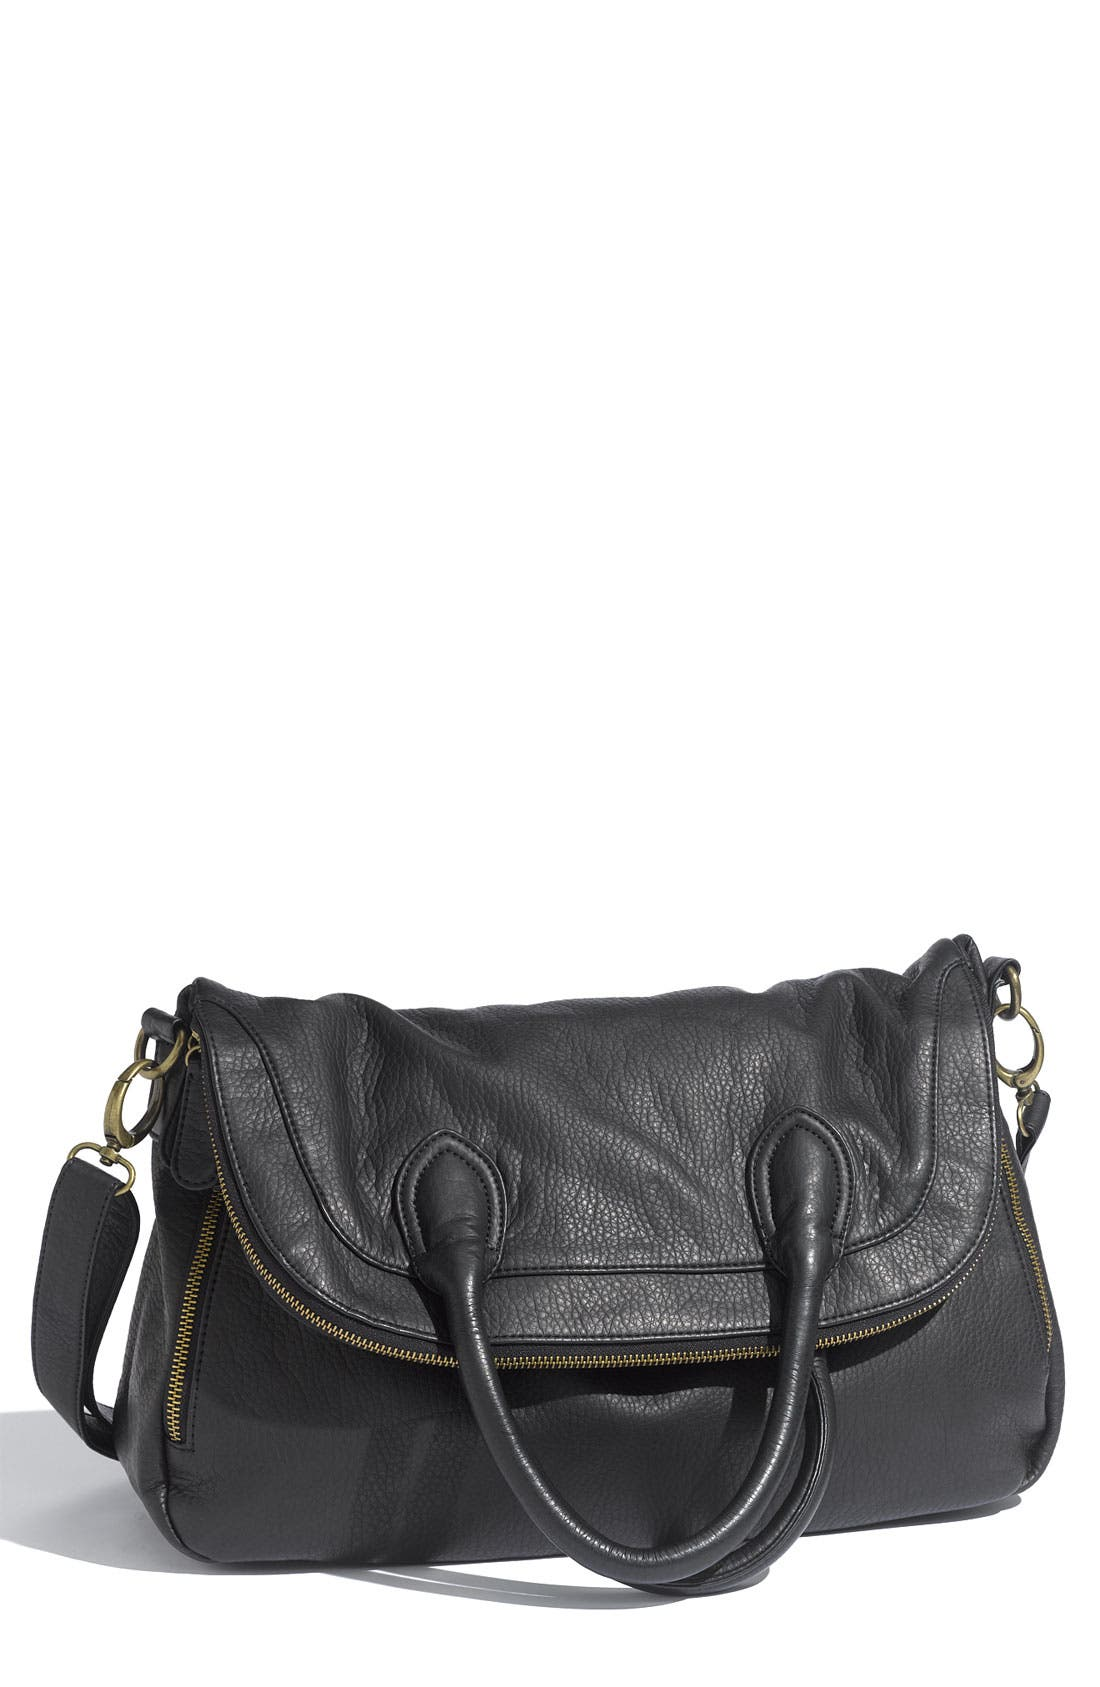 Main Image - Tulu Faux Leather Crossbody Bag (Nordstrom Exclusive)